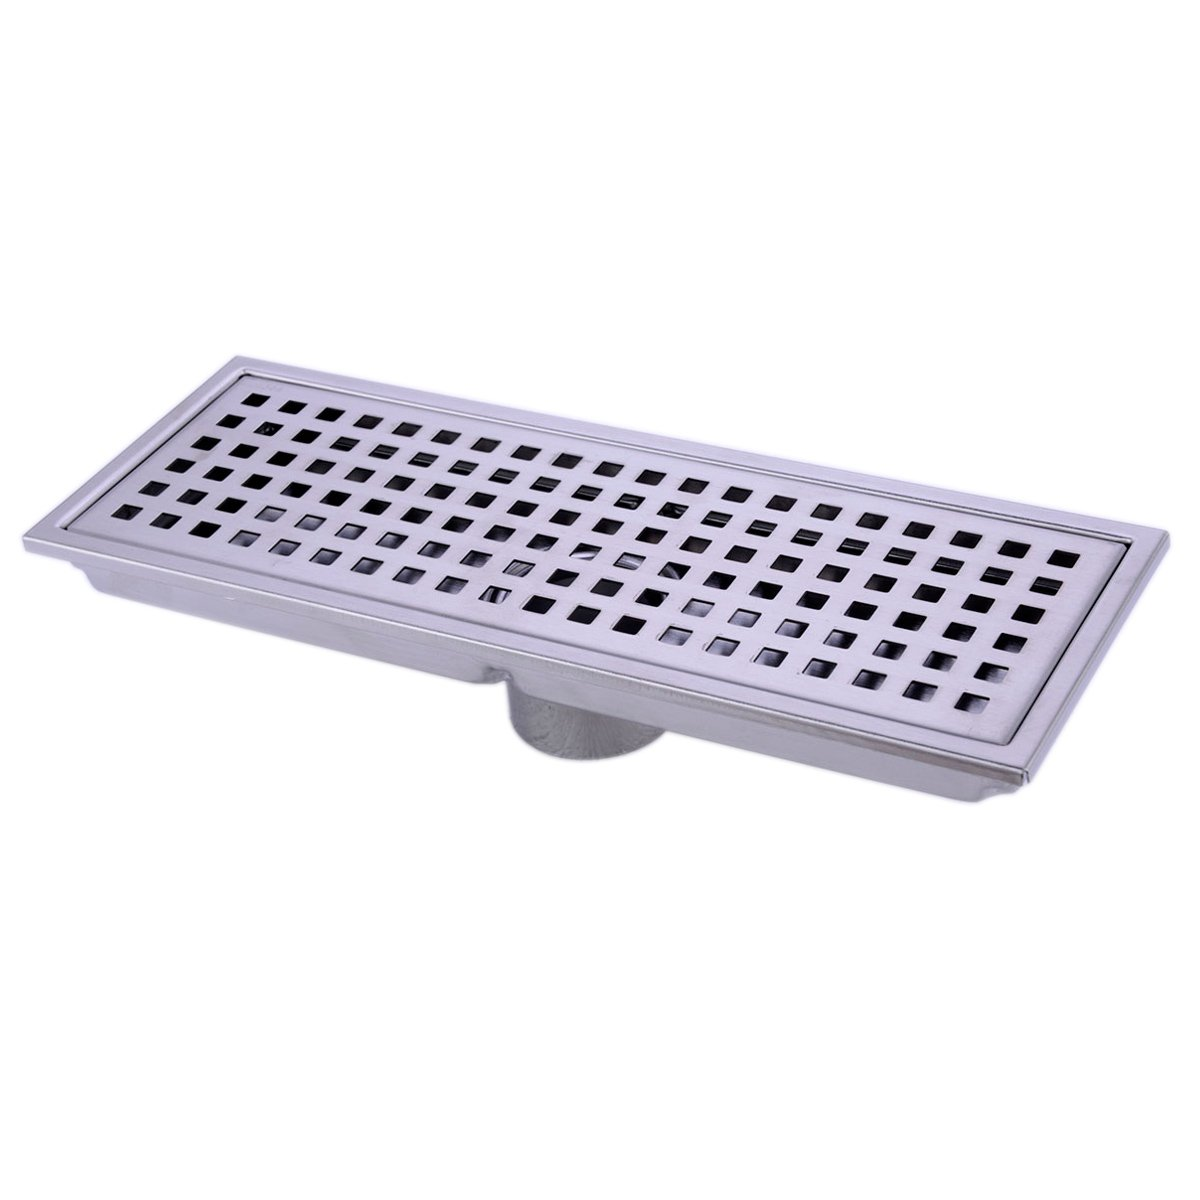 HANEBATH Linear Shower Floor Drain with Removal Cover - Made of Sus304 Stainless Steel, 12 Inch Long - Brushed Stainless